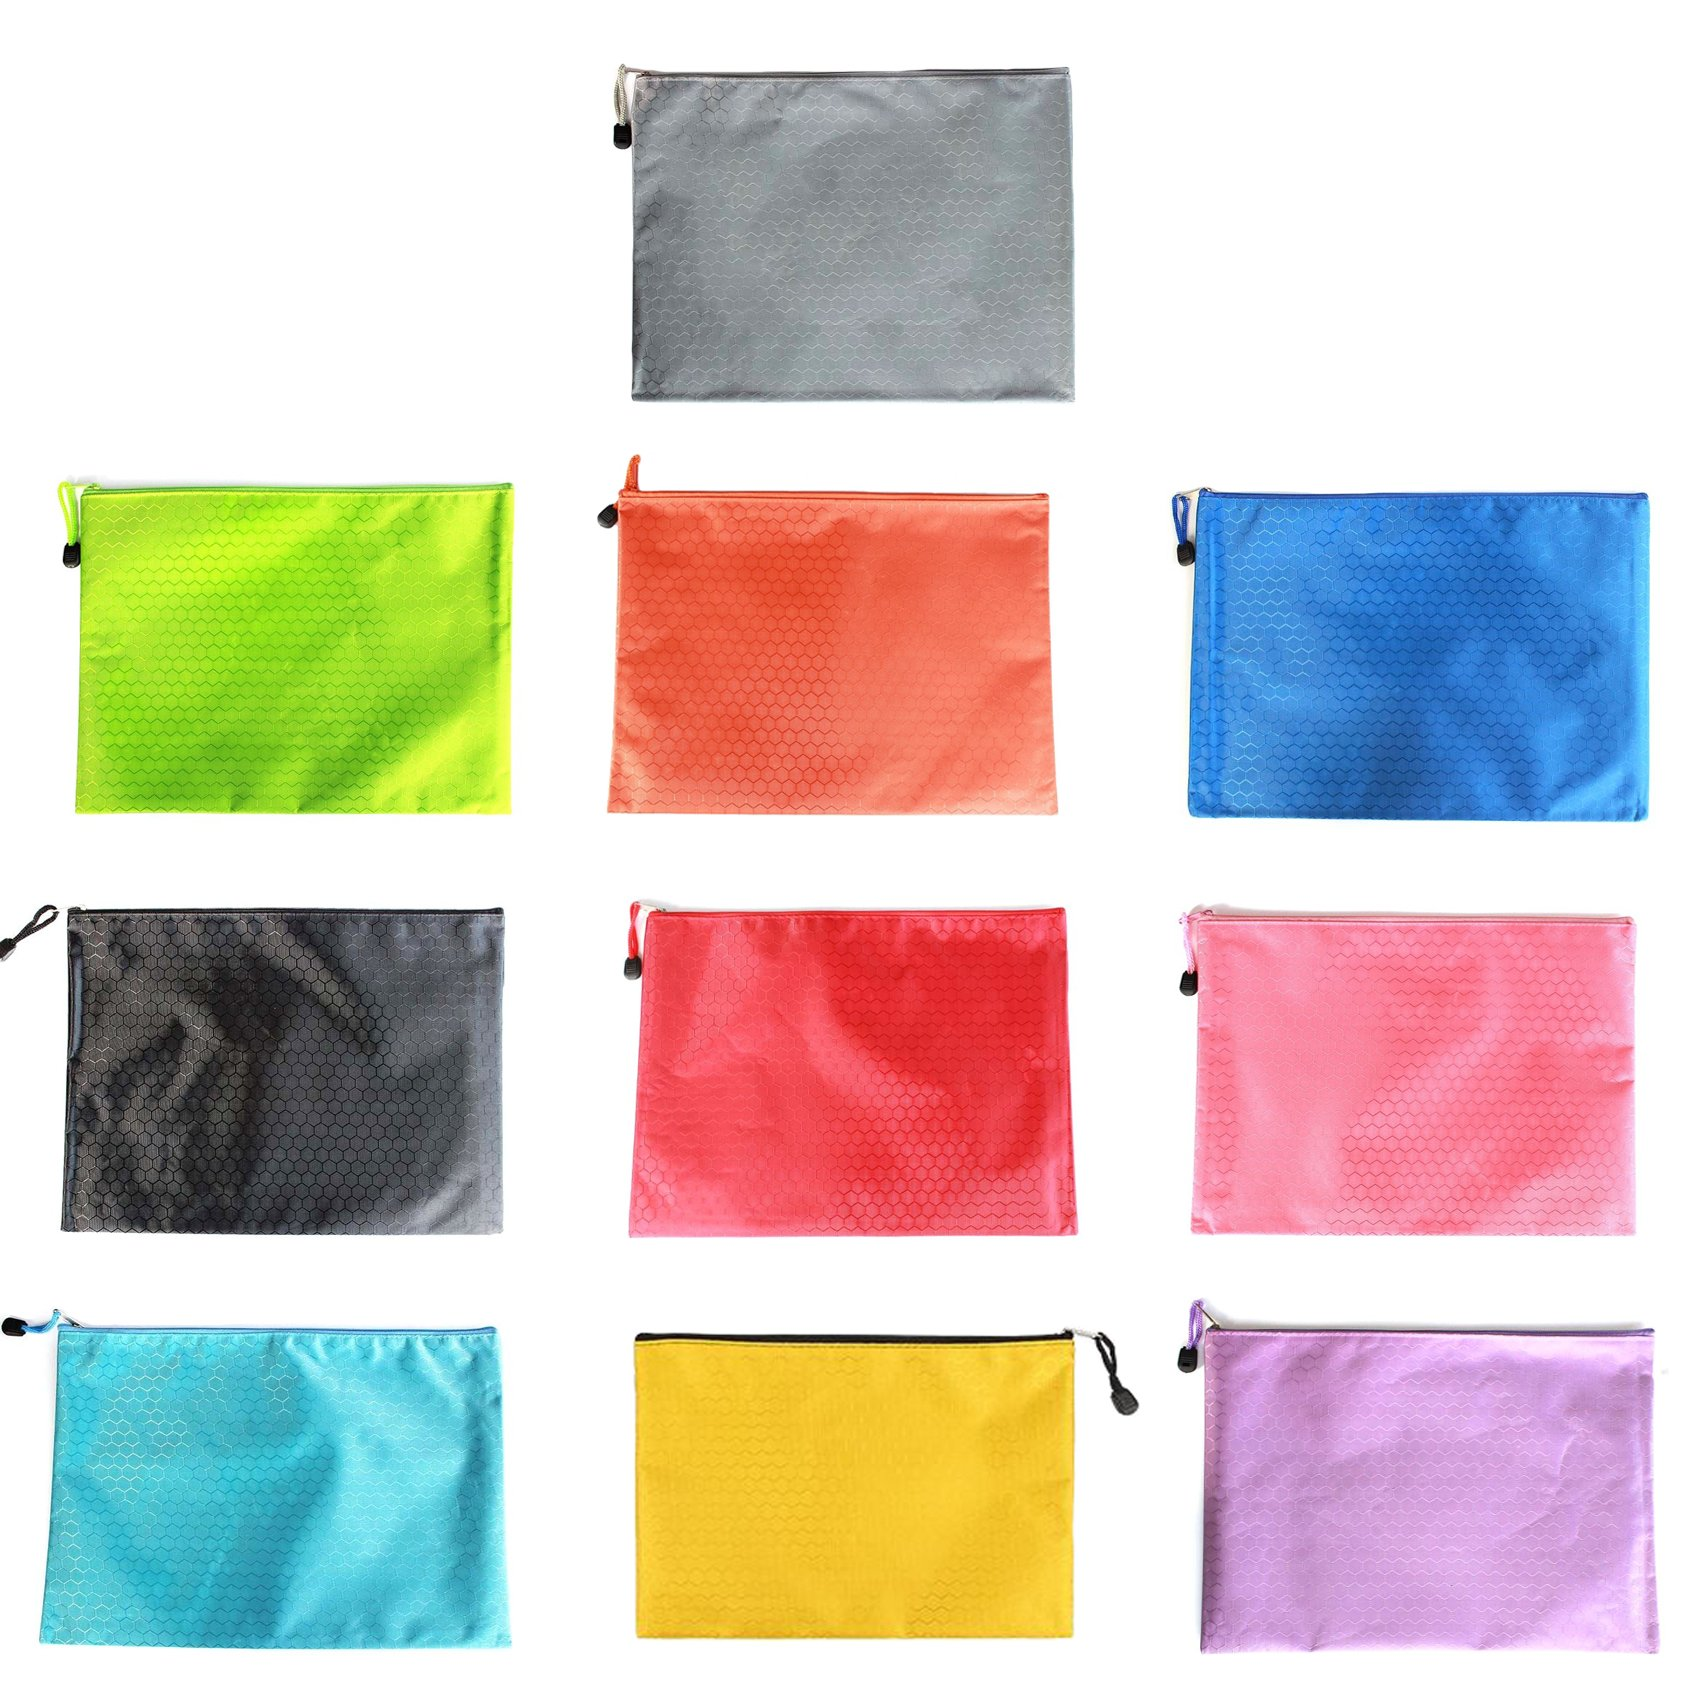 10-Pack Waterproof A4 Zip File Folder Bag Office Filing Storage Pouch with Zipper, Office Stationery, Random Colors